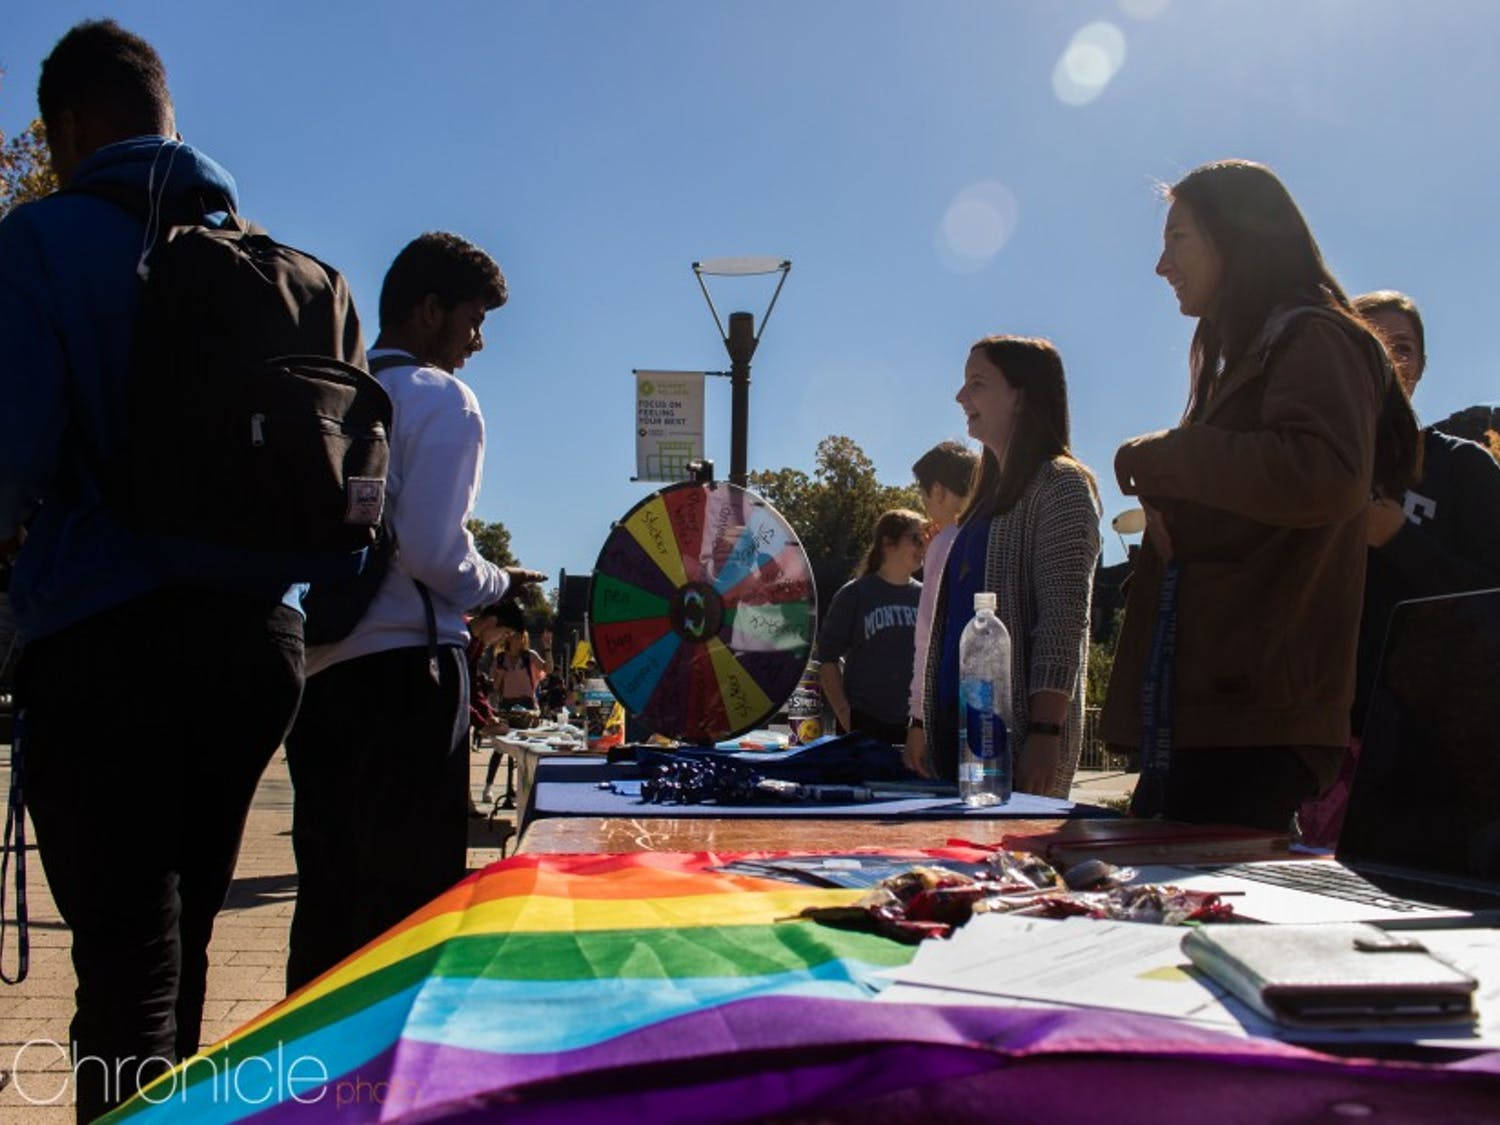 National Coming Out Day festivities were held on the B.C. Plaza this year.